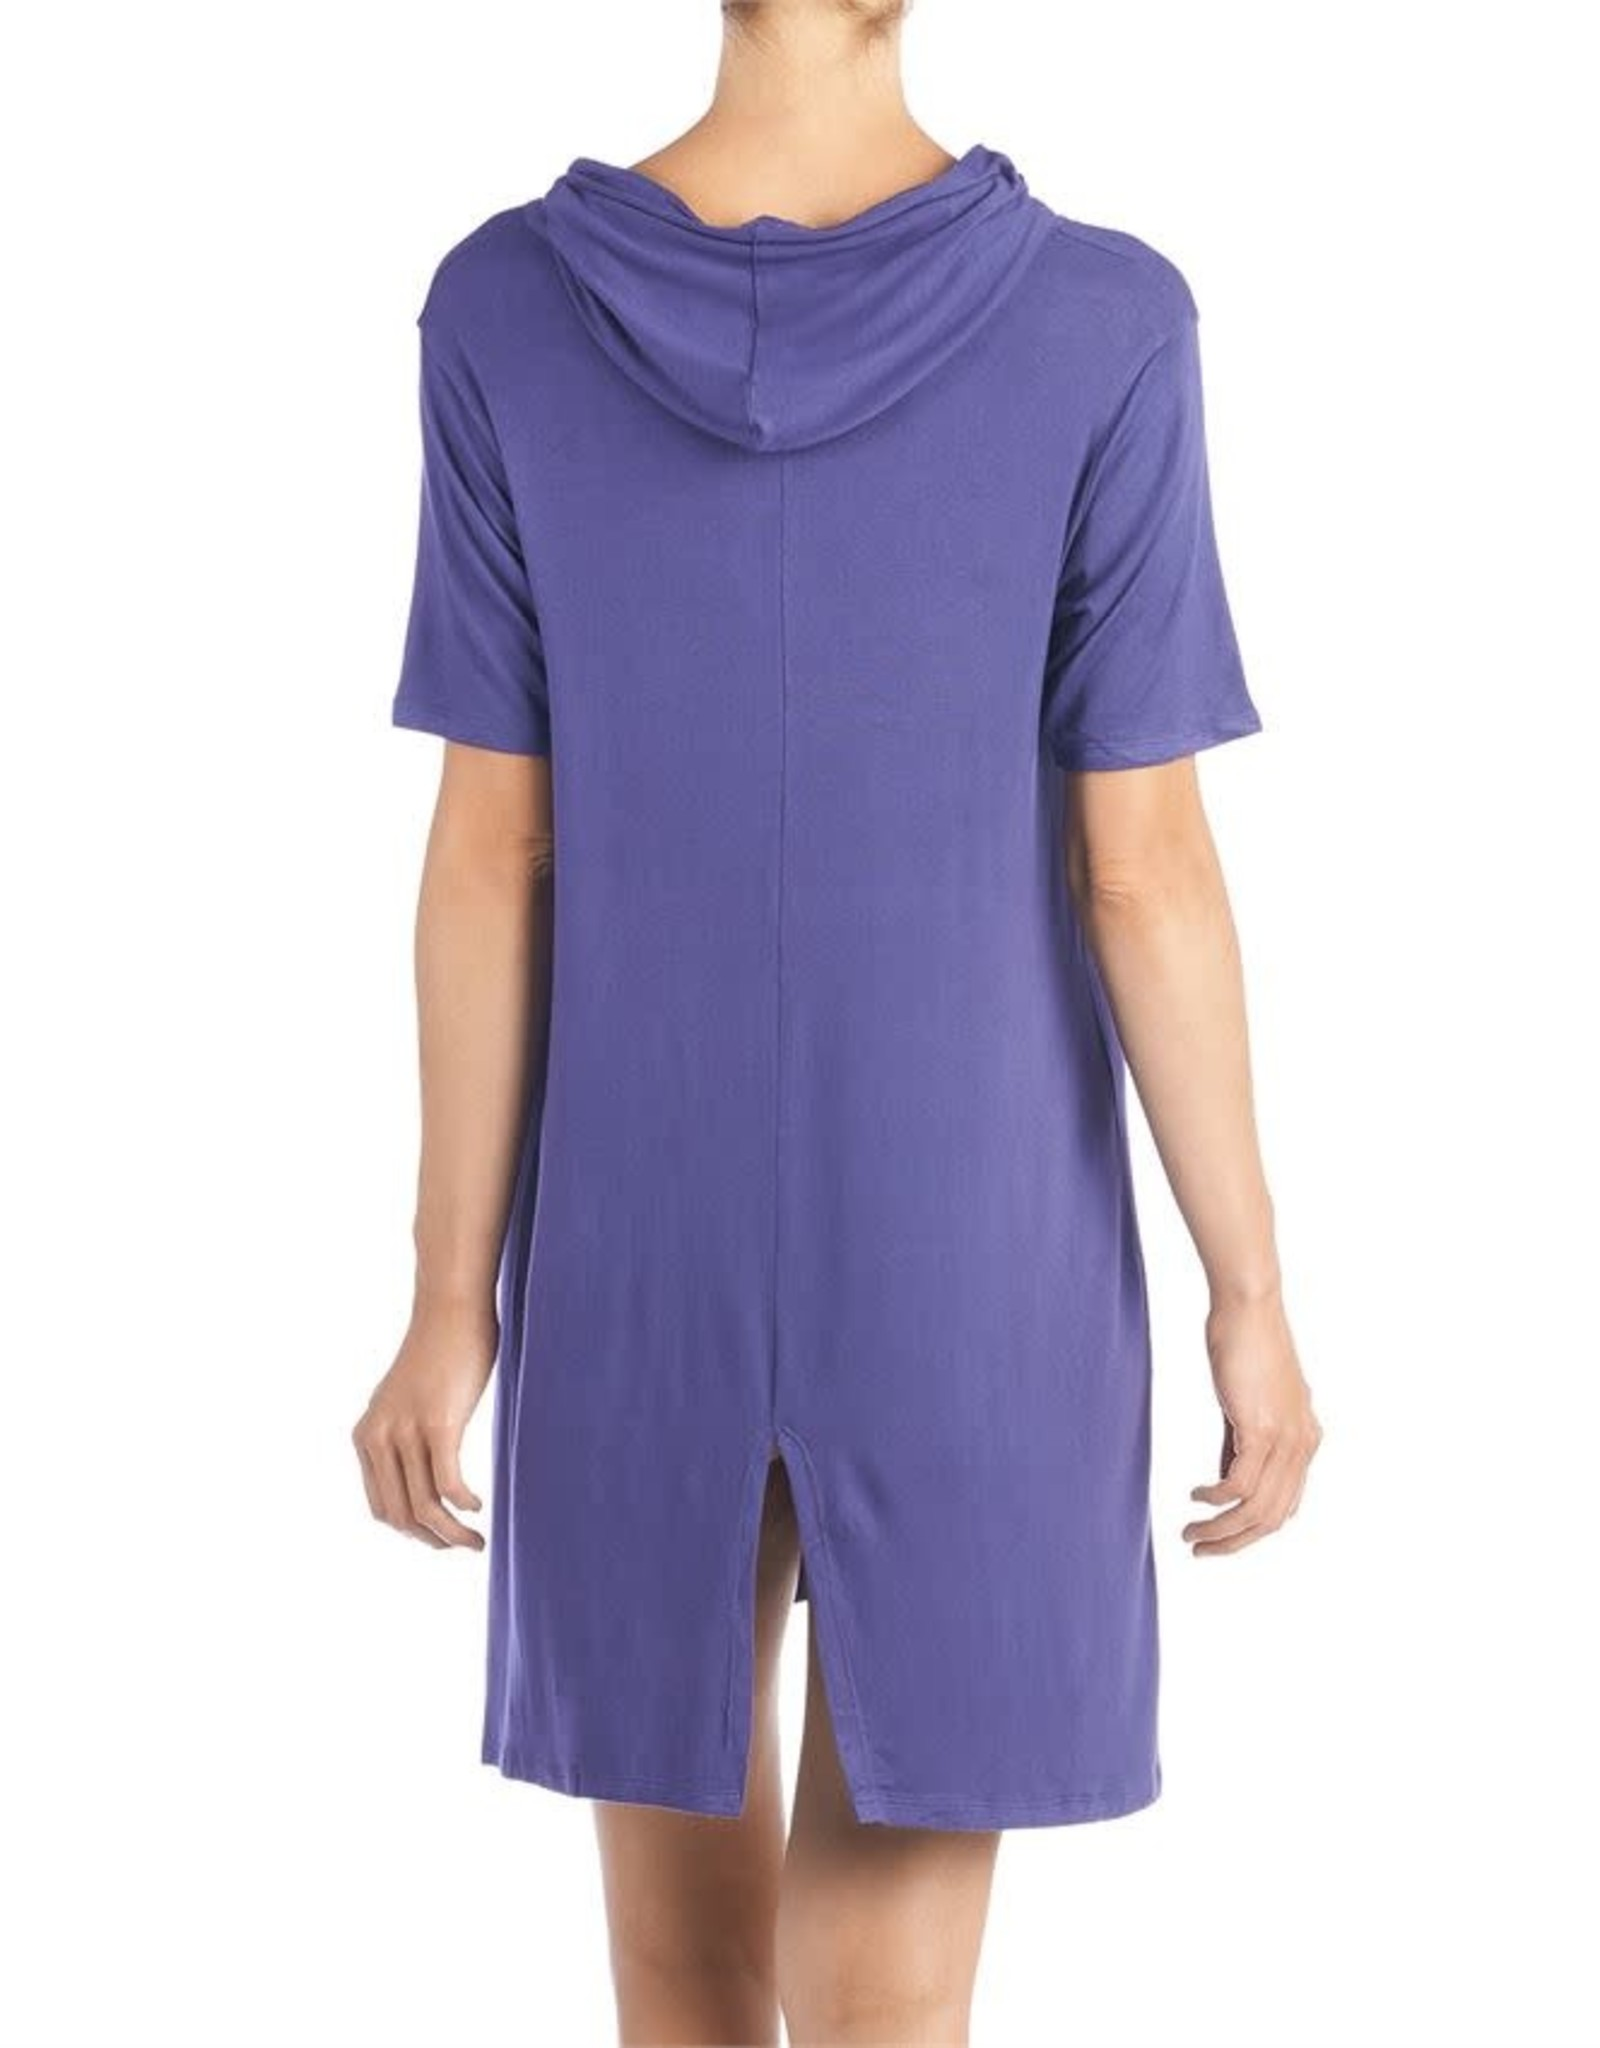 Coco & Carmen At Ease Pocket Spring Dress Blue